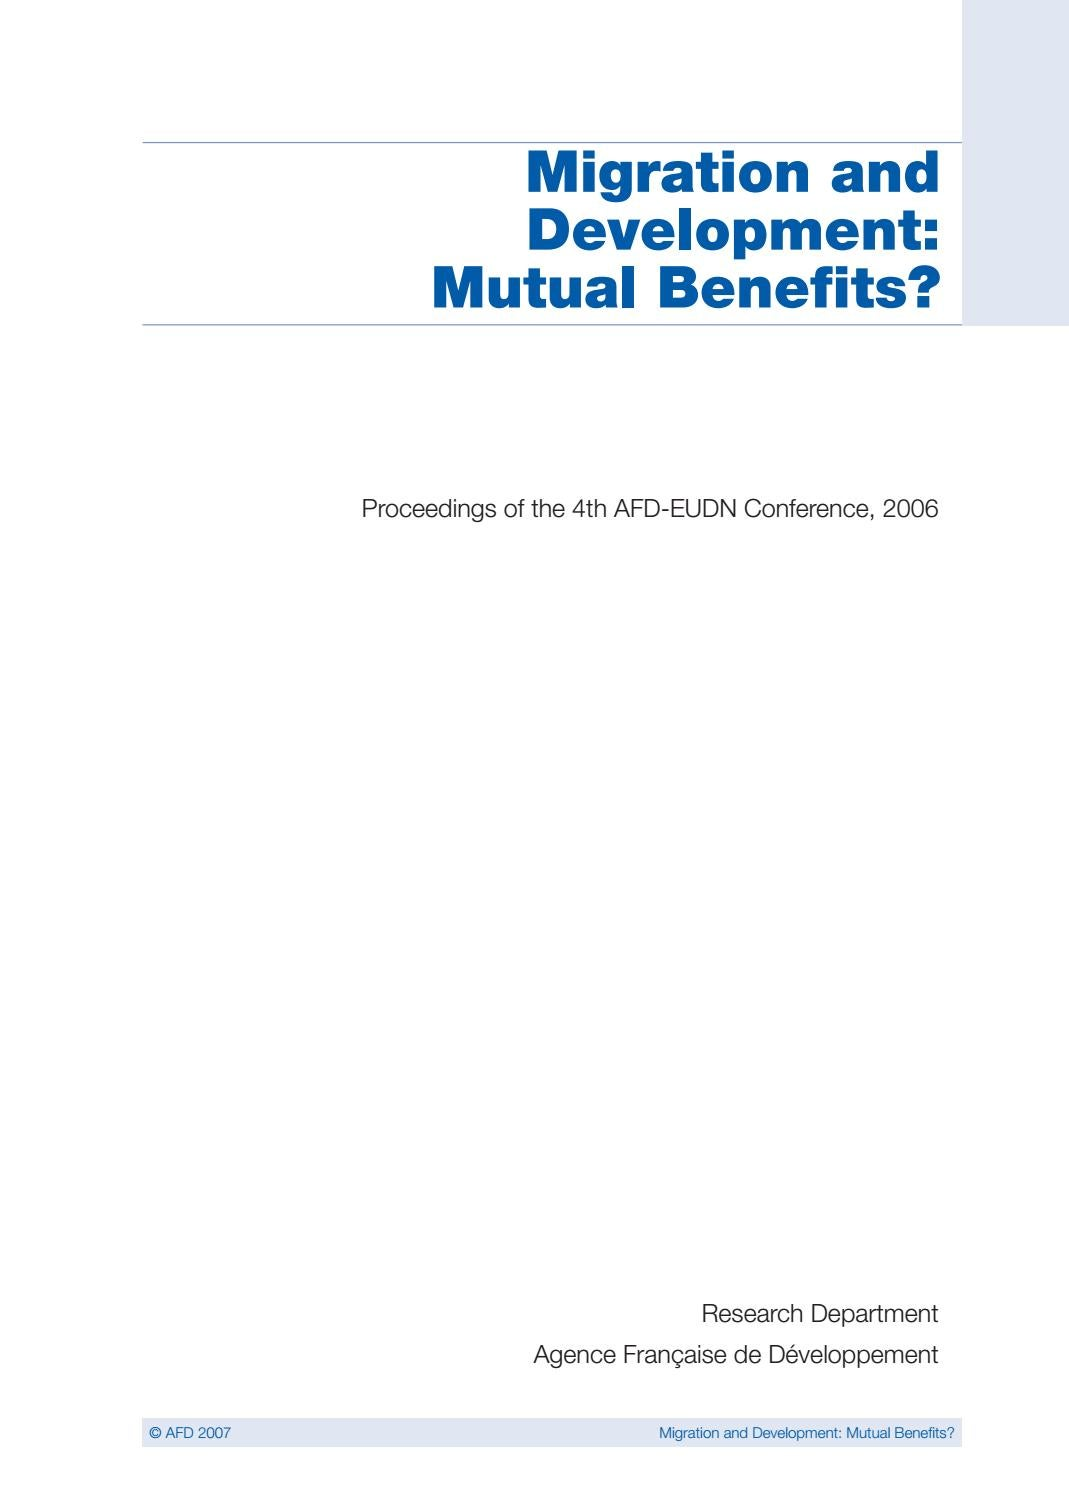 Migration and Development: Mutual Benefits? Proceedings of the 4th